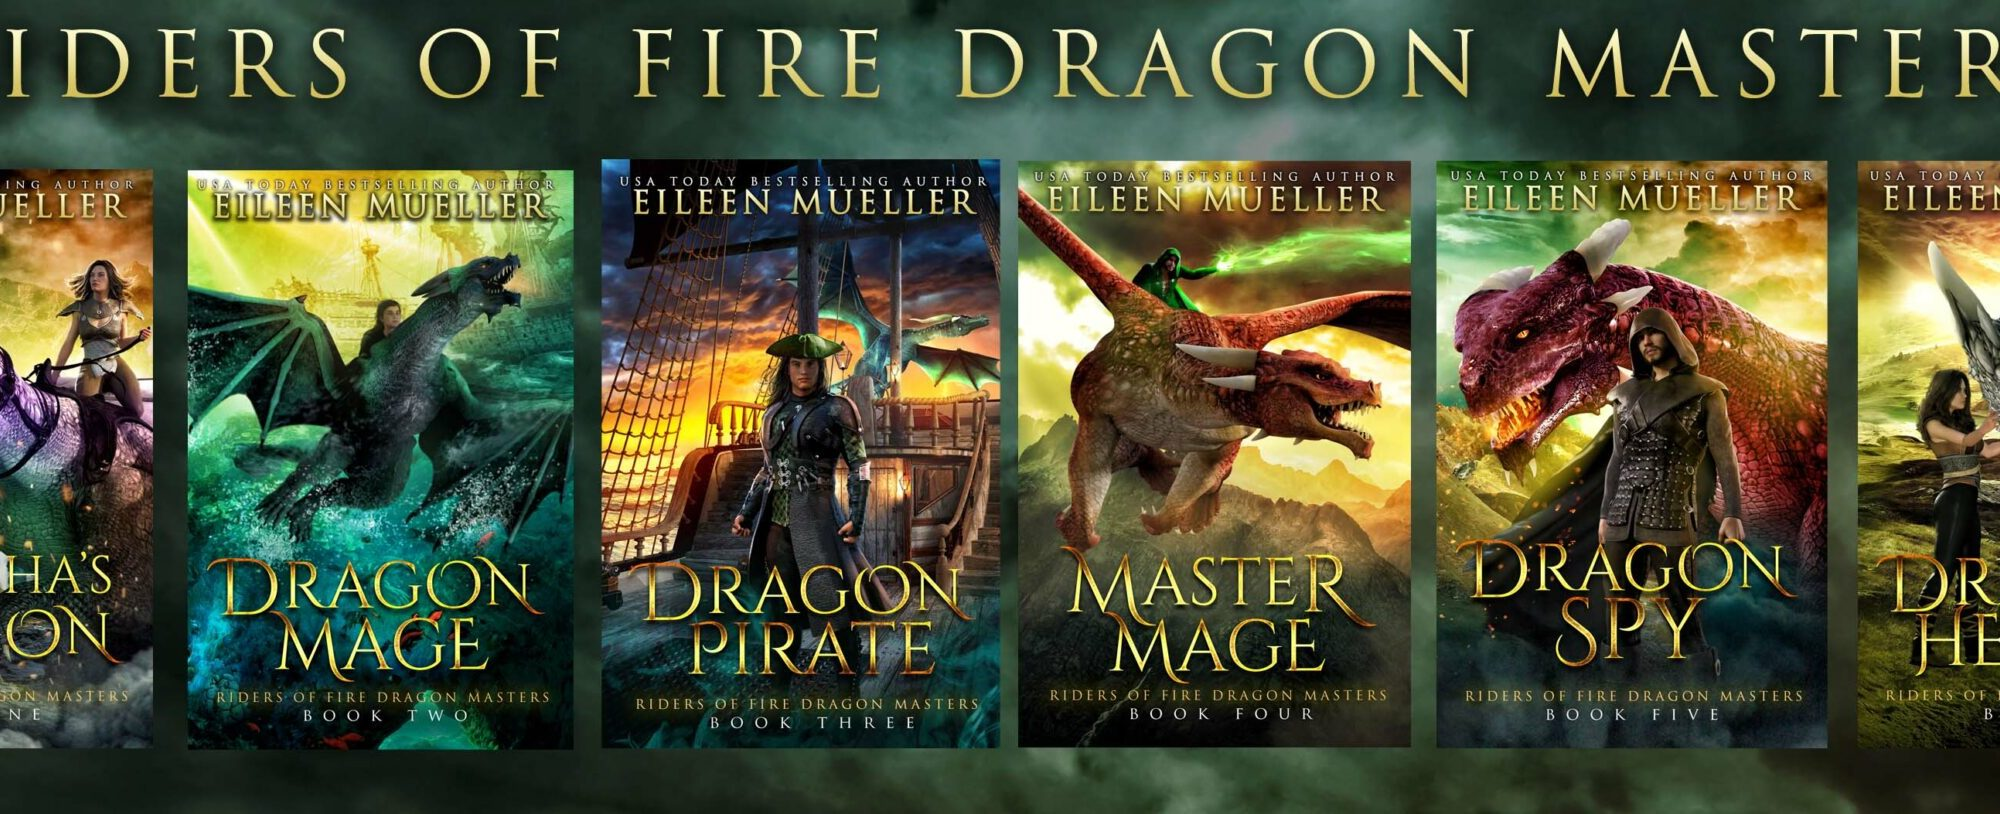 Riders of Fire Dragon Masters